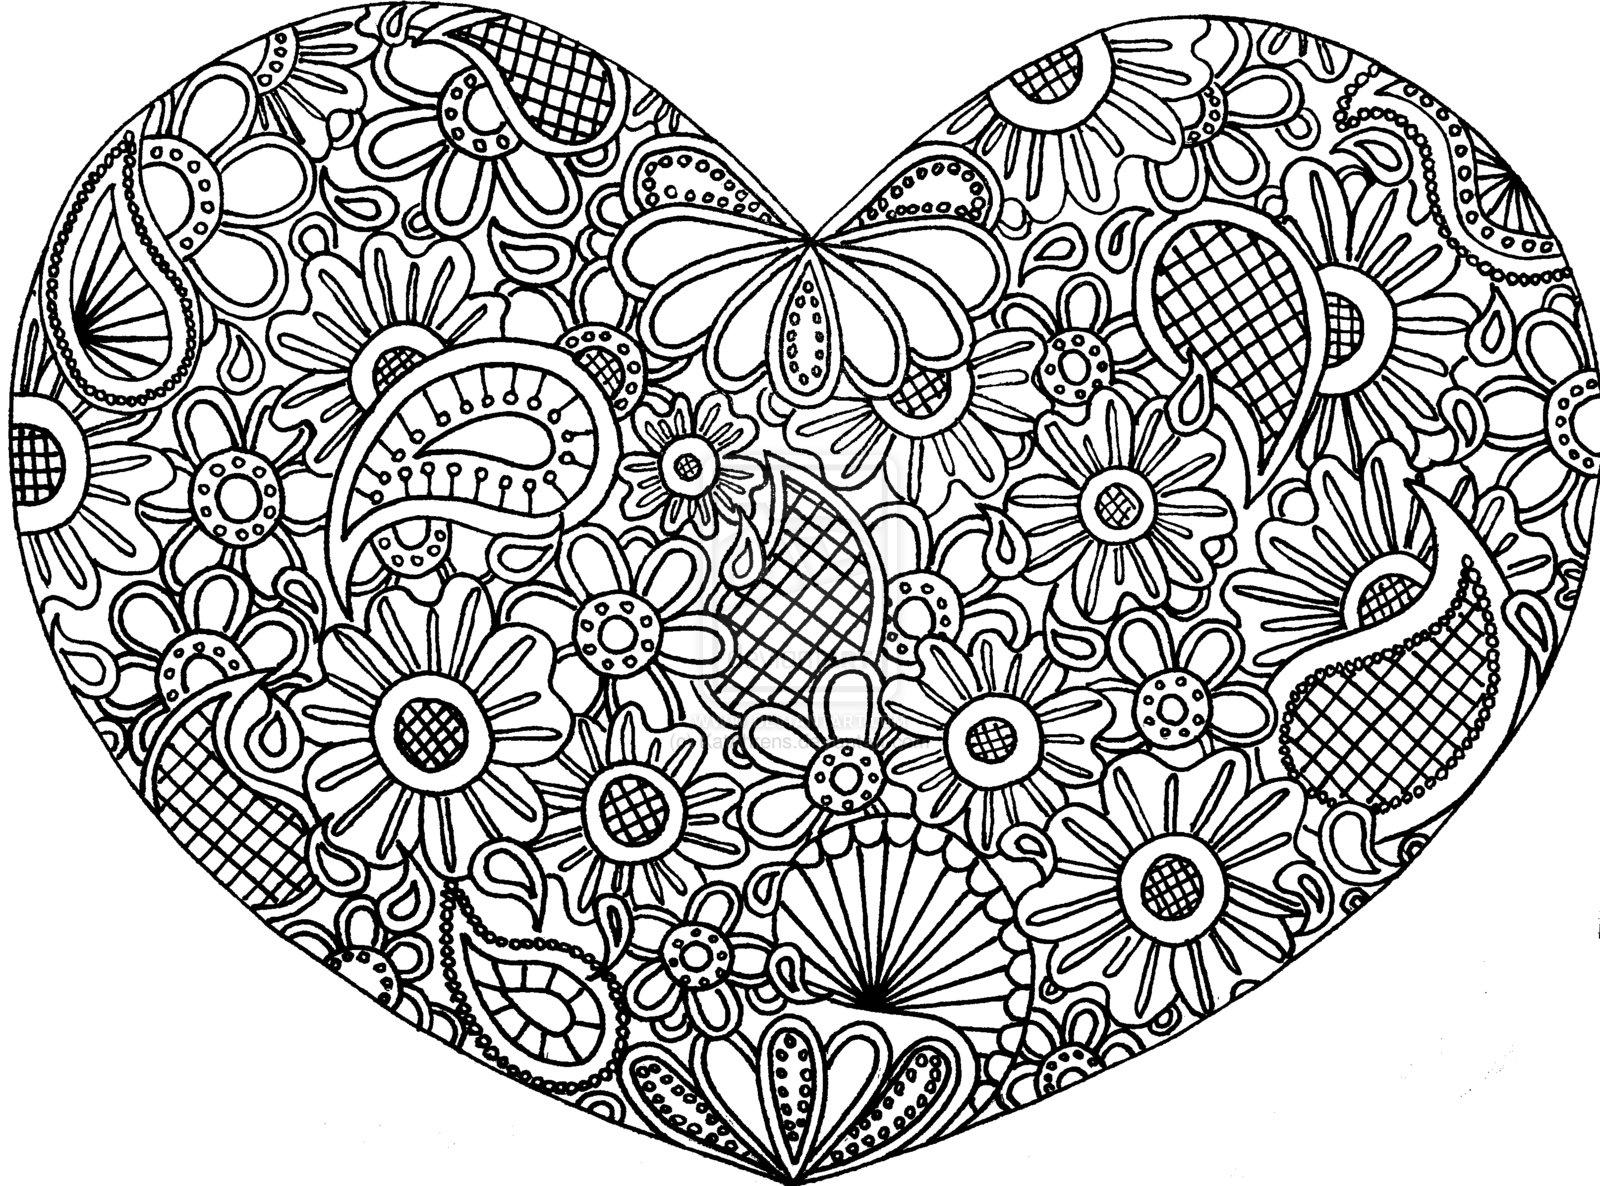 Colored Zentangles Hearts Free doodle art coloring pages